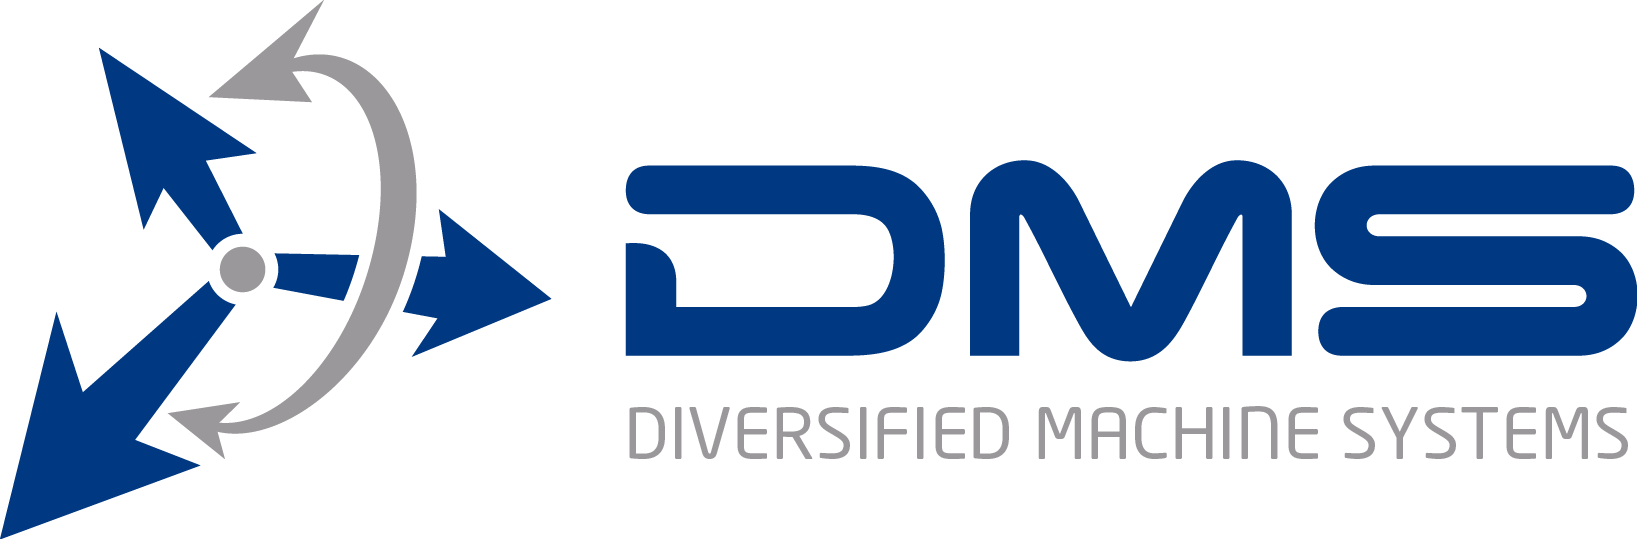 Diversified Machine Systems Dms Announces The Fagor